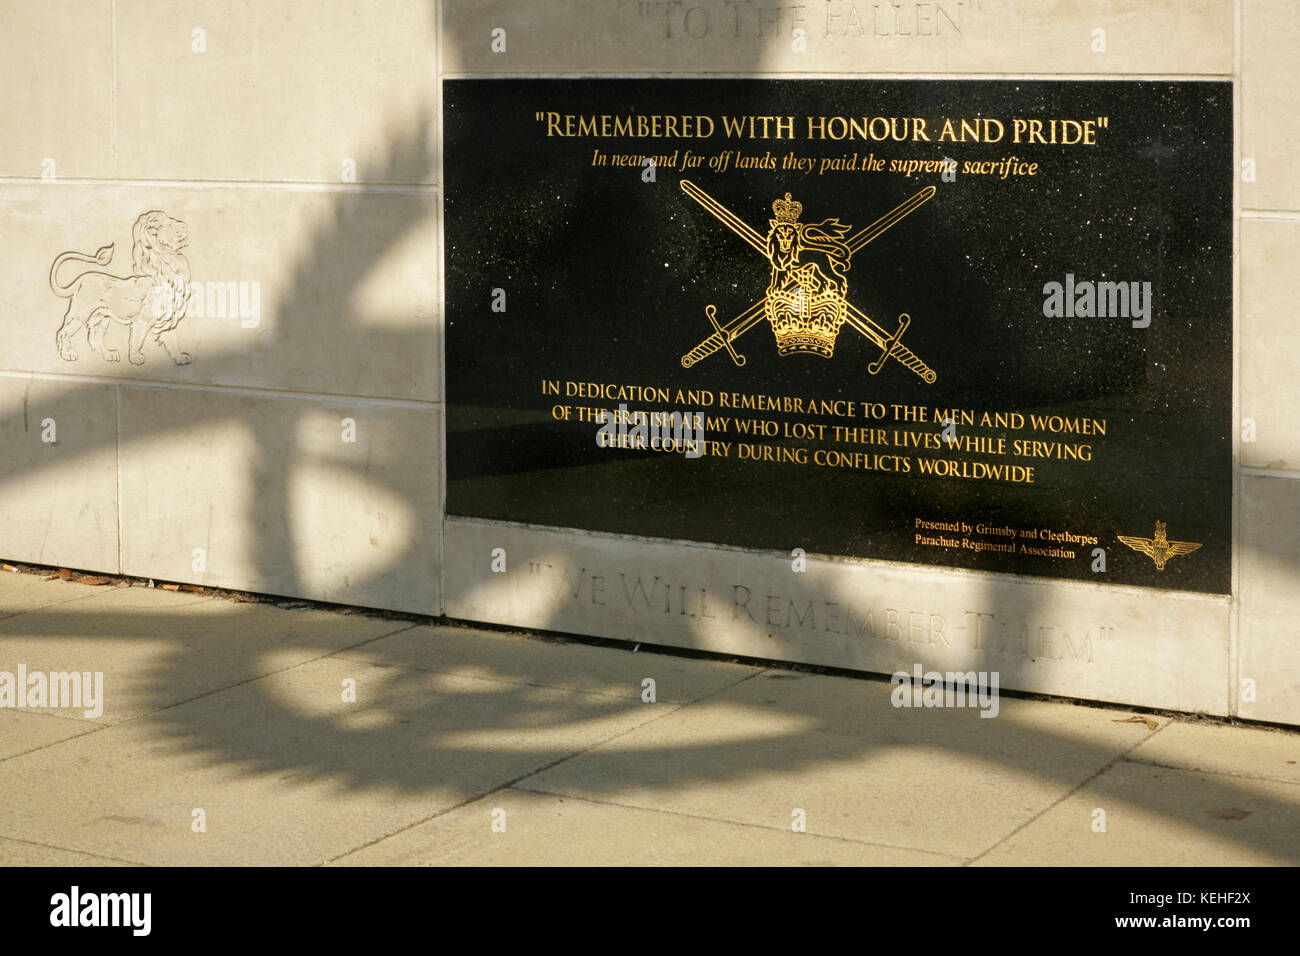 Memorial stone to the British Army, Cleethorpes, UK. - Stock Image